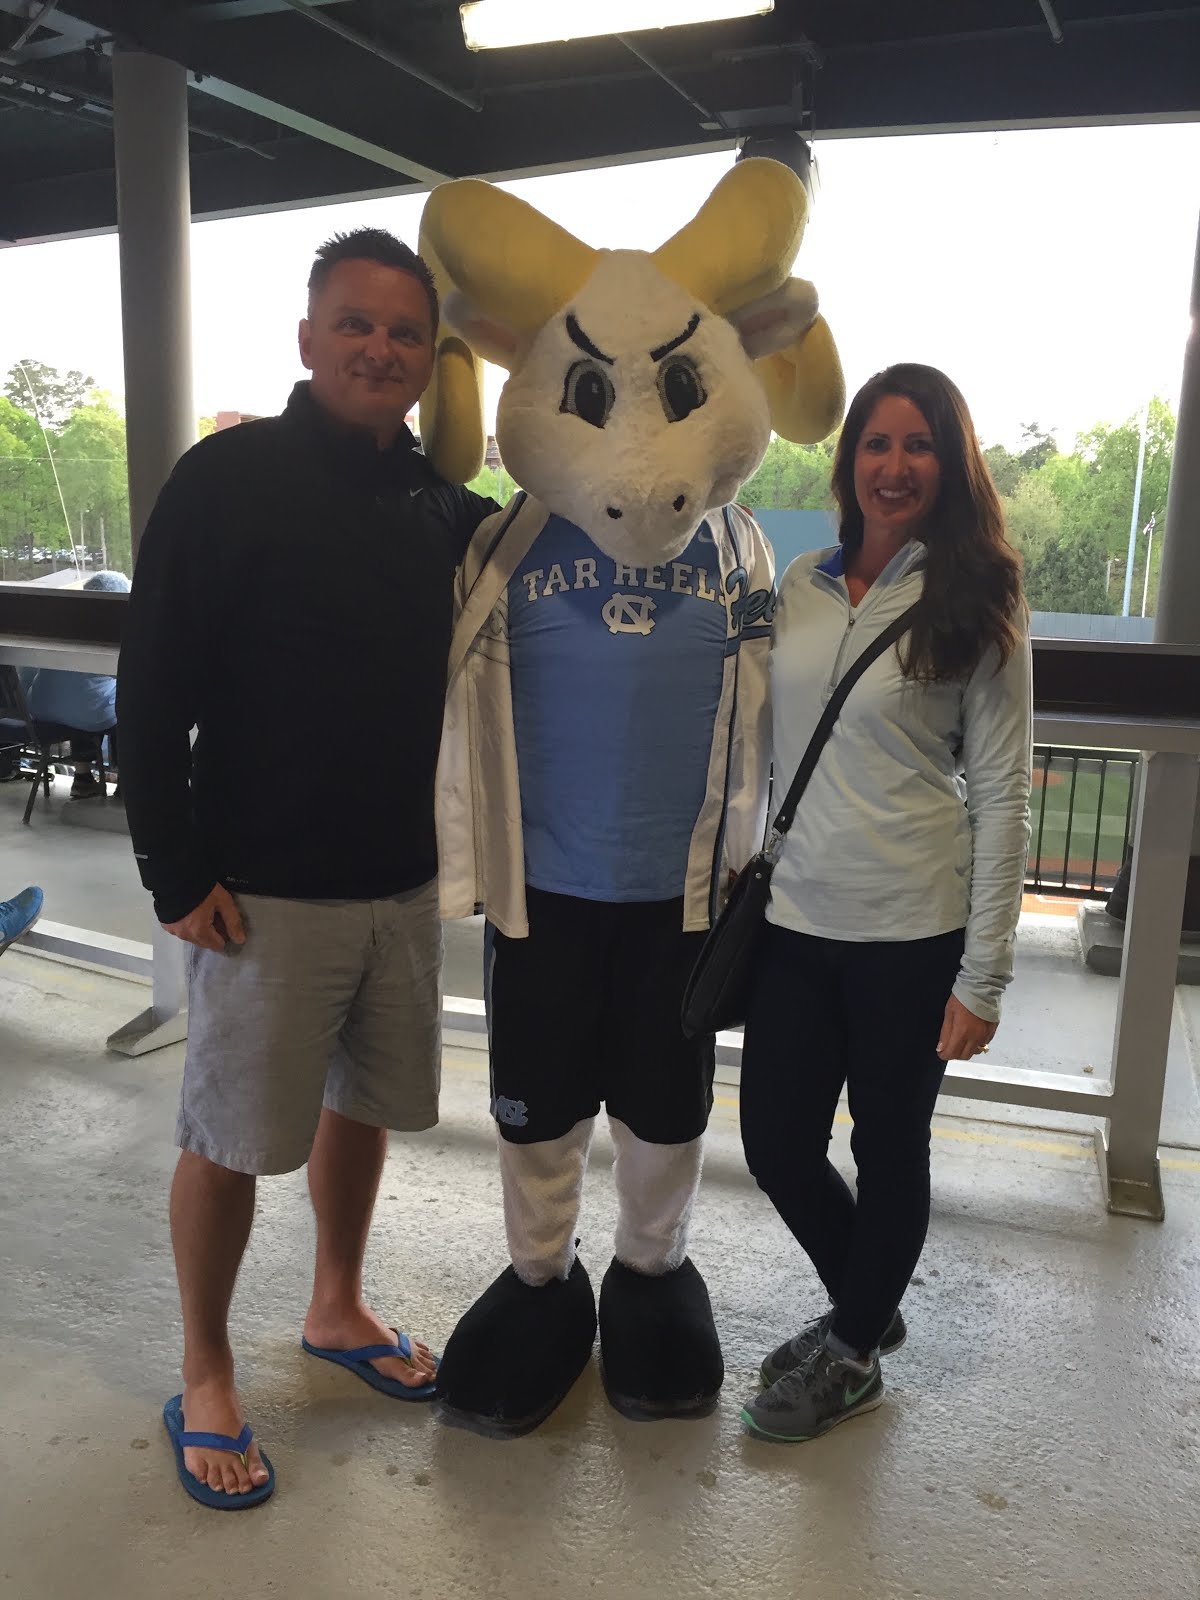 My Hubby and I, and our Tarheel